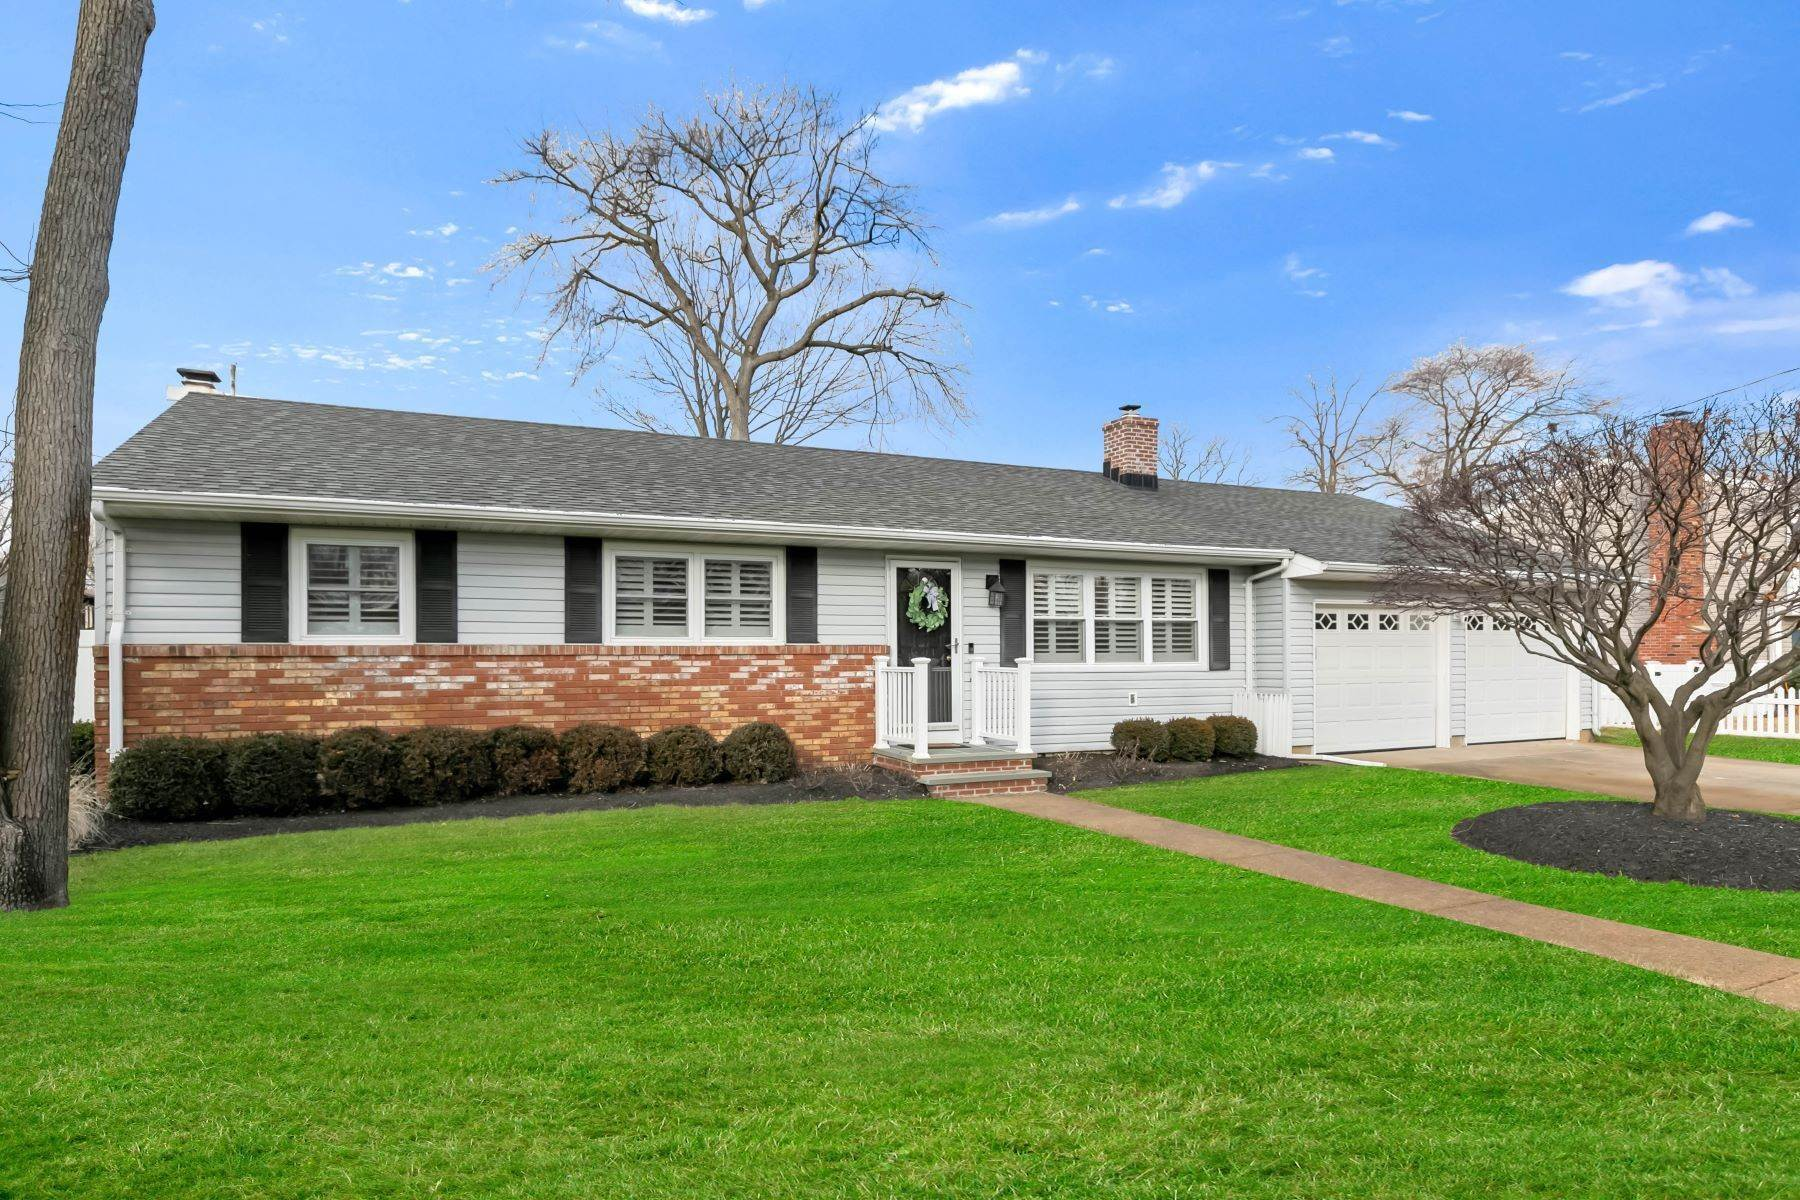 Property for Sale at Picture Perfect 1508 Maple St Wall Township, New Jersey 07719 United States